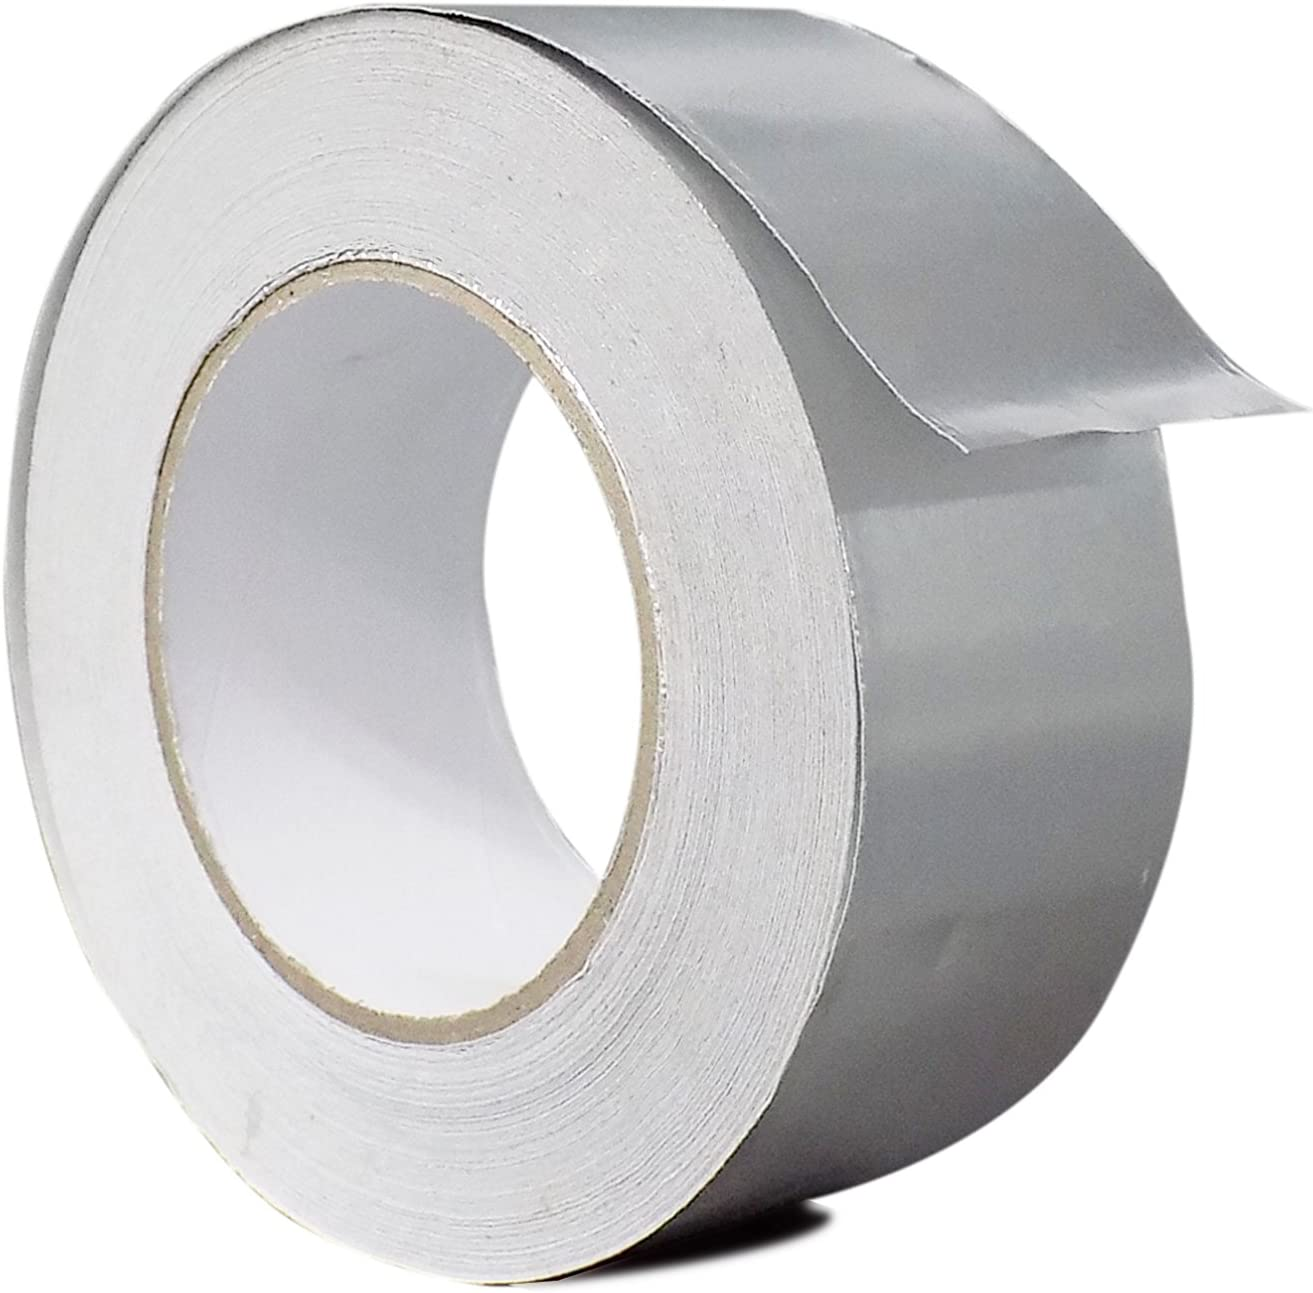 WOD AF-20R Premium Grade General Purpose Heat Shield Resistant Aluminum Foil Tape - Good for HVAC, Air Ducts, Insulation (Available in Multiple Sizes): 2.5 in. wide x 50 yds.